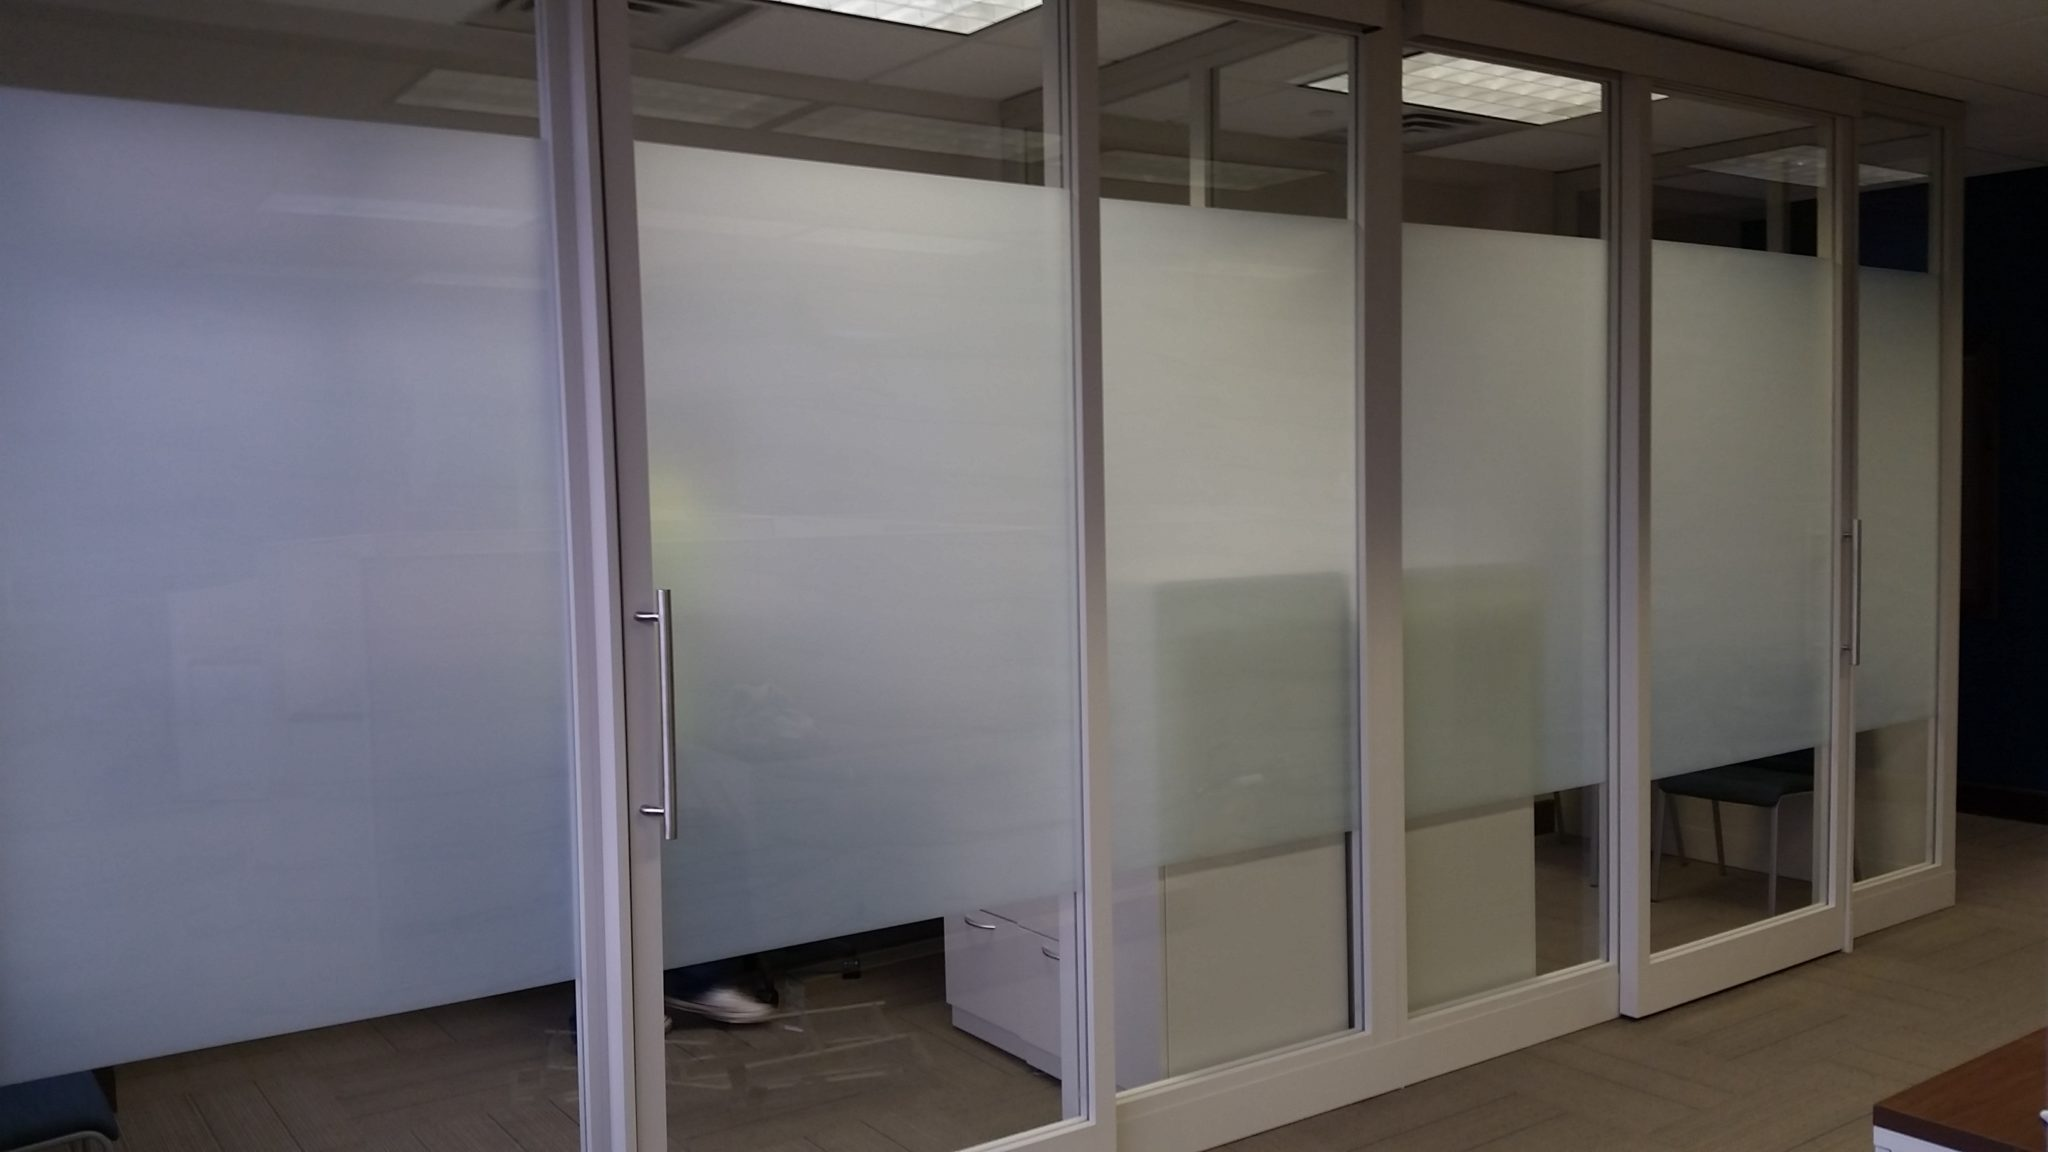 A Band Of 60 Frost Installed In An Interior Office E With Gl Walls